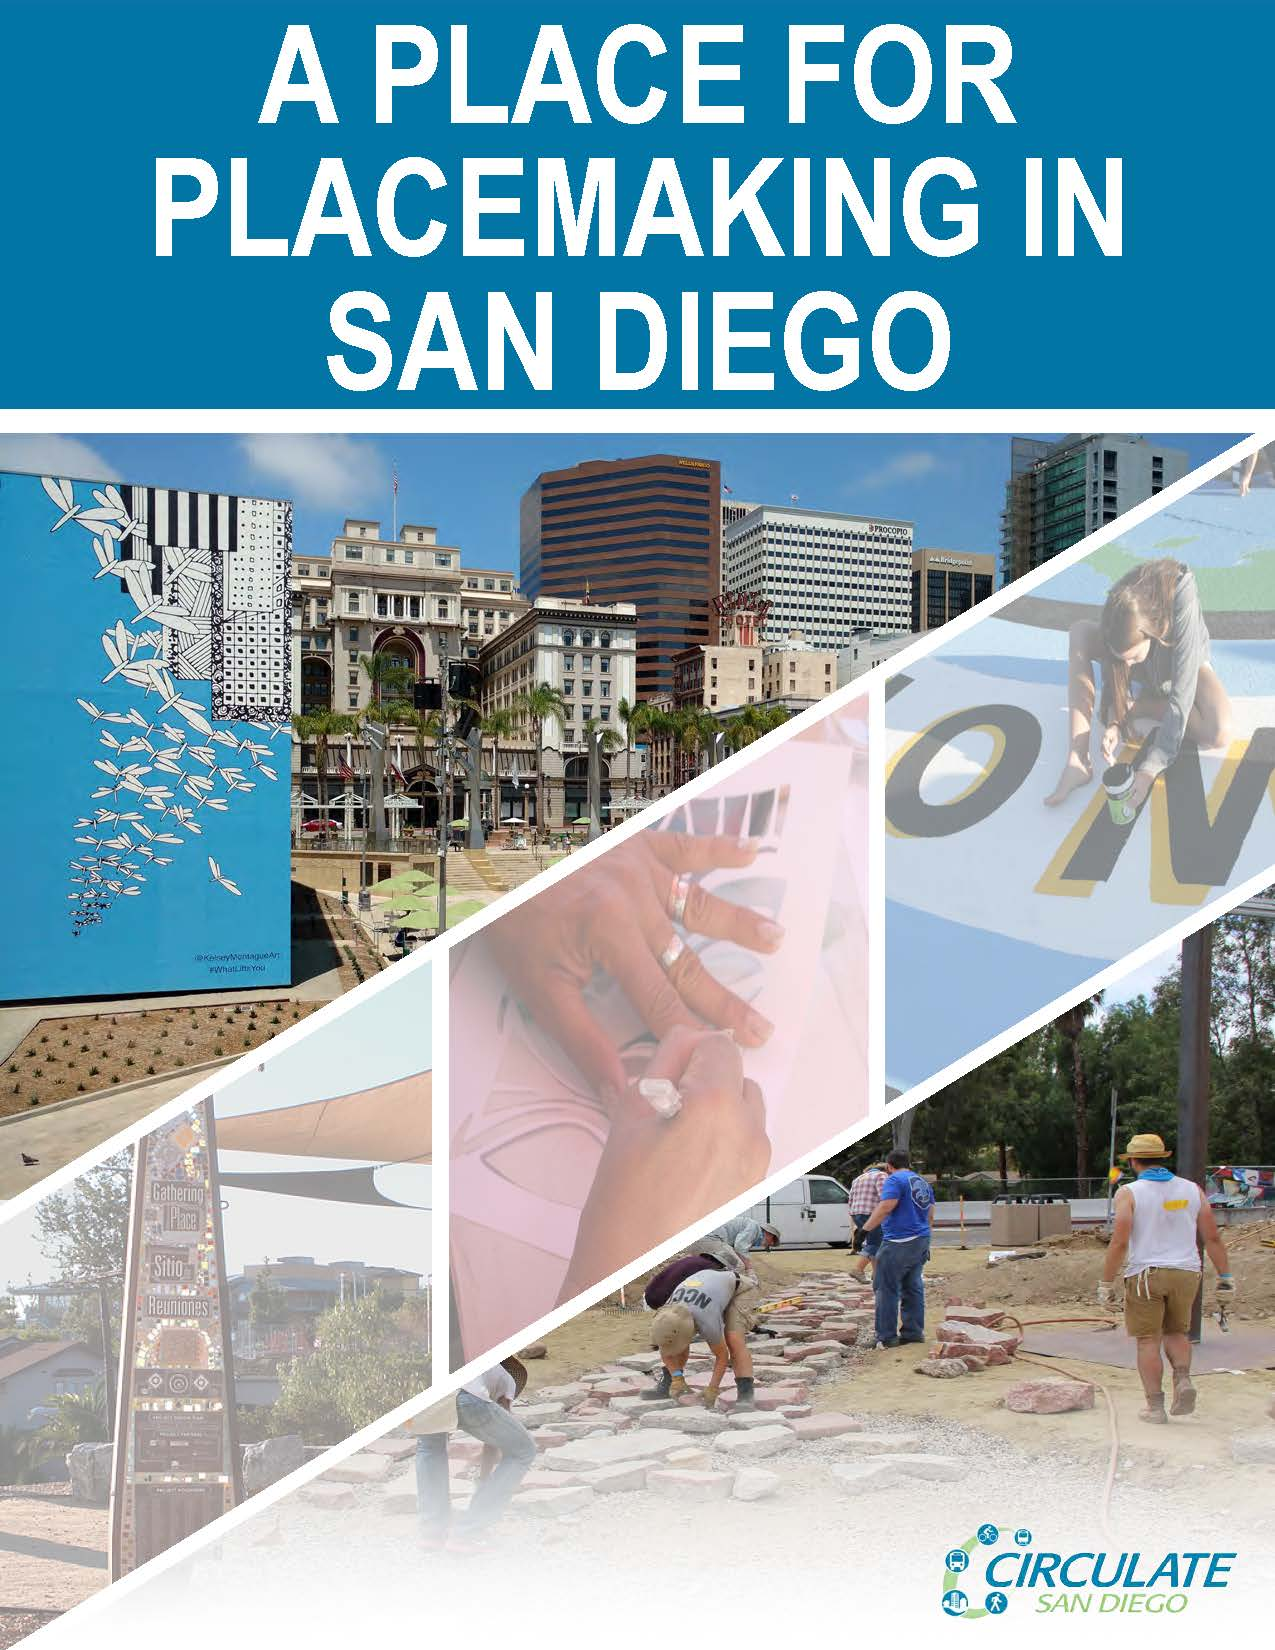 Report-_A_Place_for_Placemaking_in_San_Diego.jpg